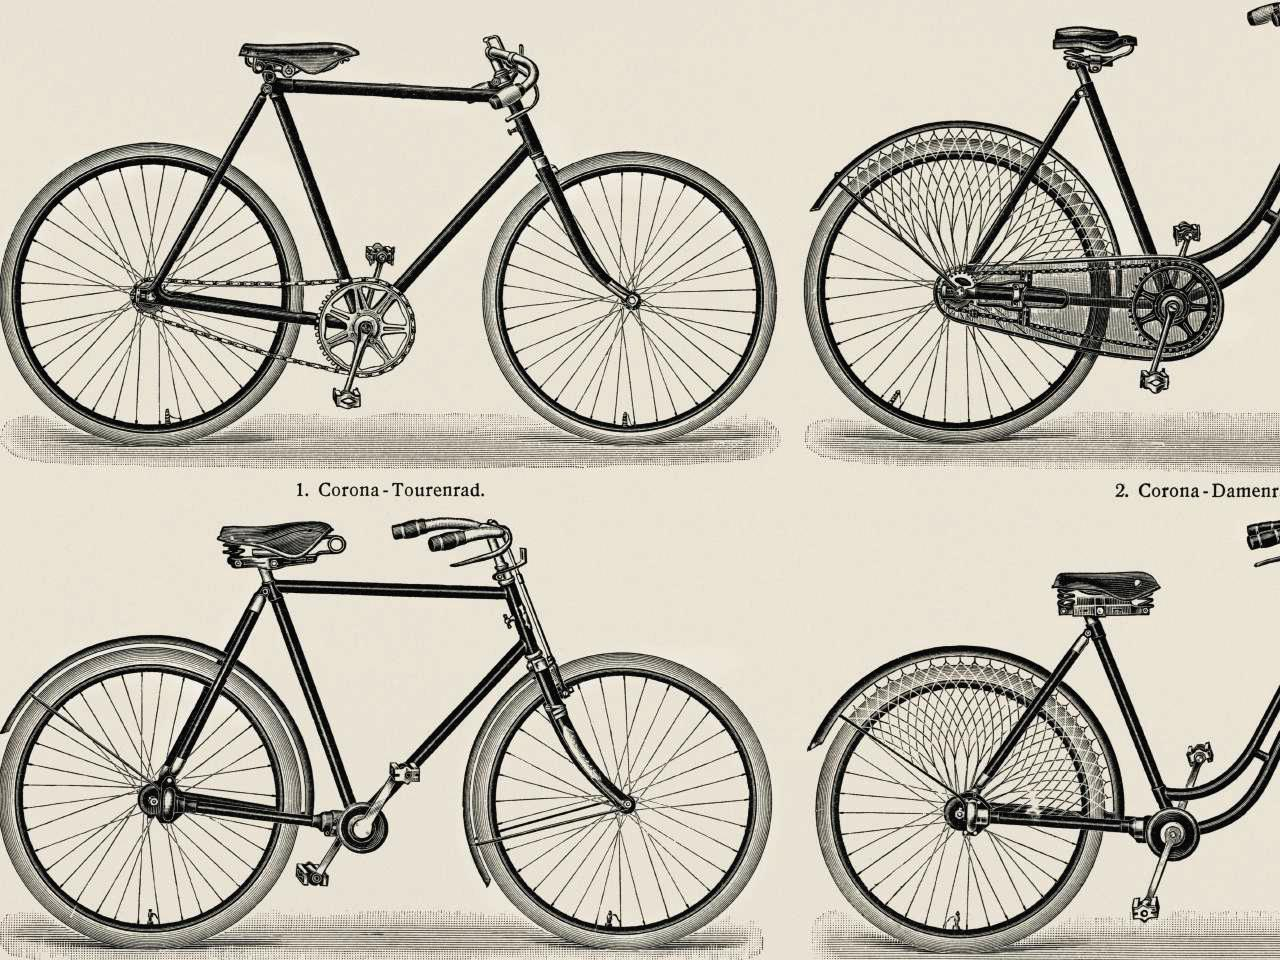 Line drawings of four antique touring bicycles.